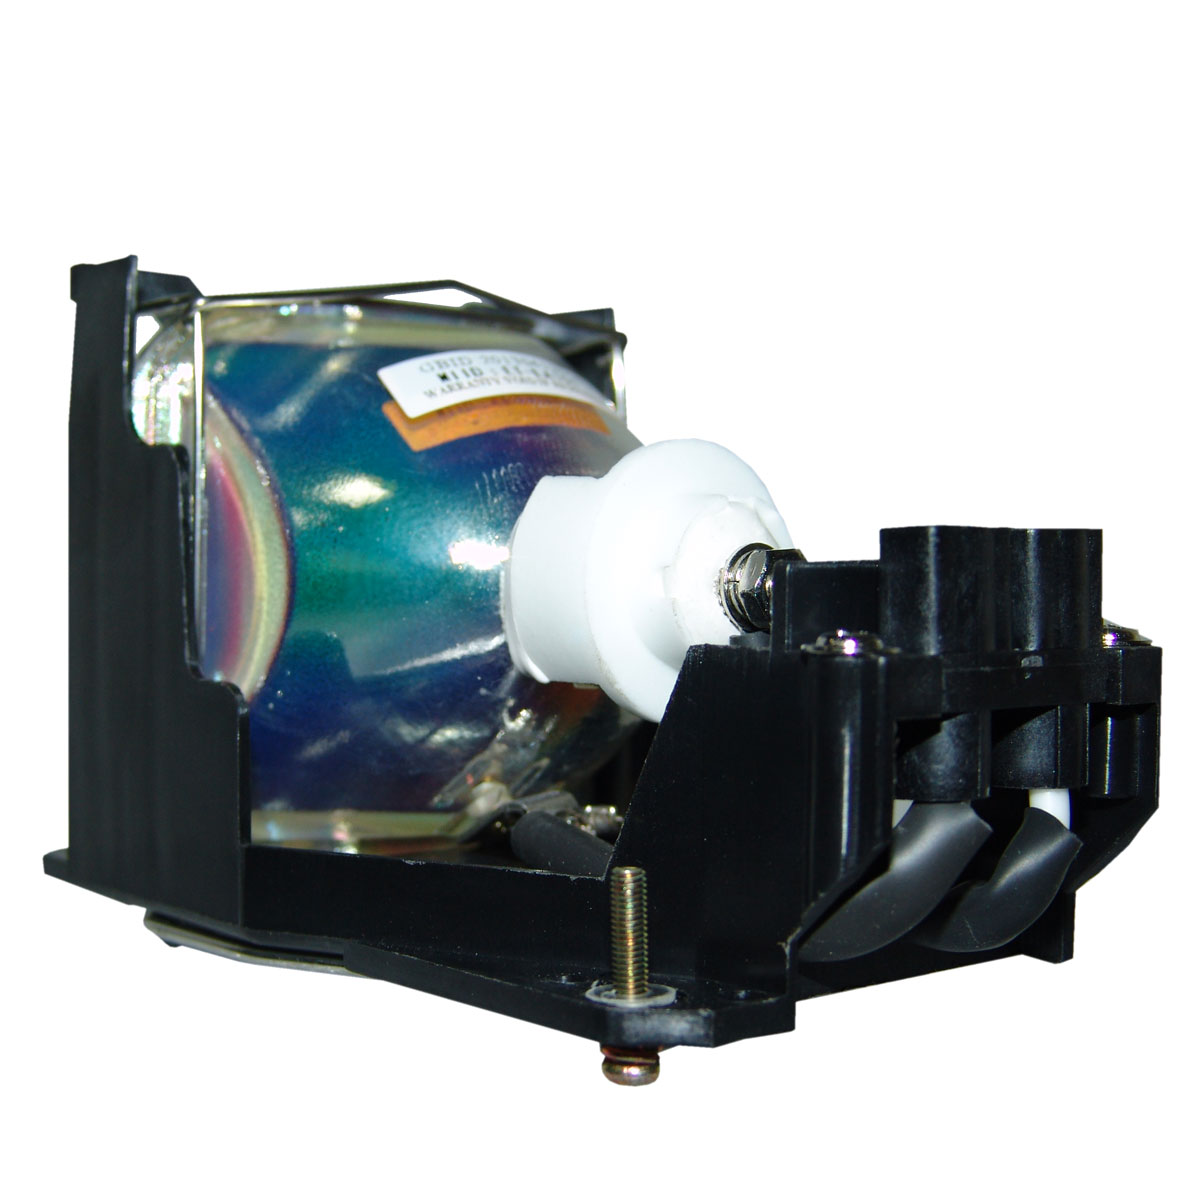 Lutema Economy for Panasonic PT-L711XU Projector Lamp with Housing - image 4 of 5